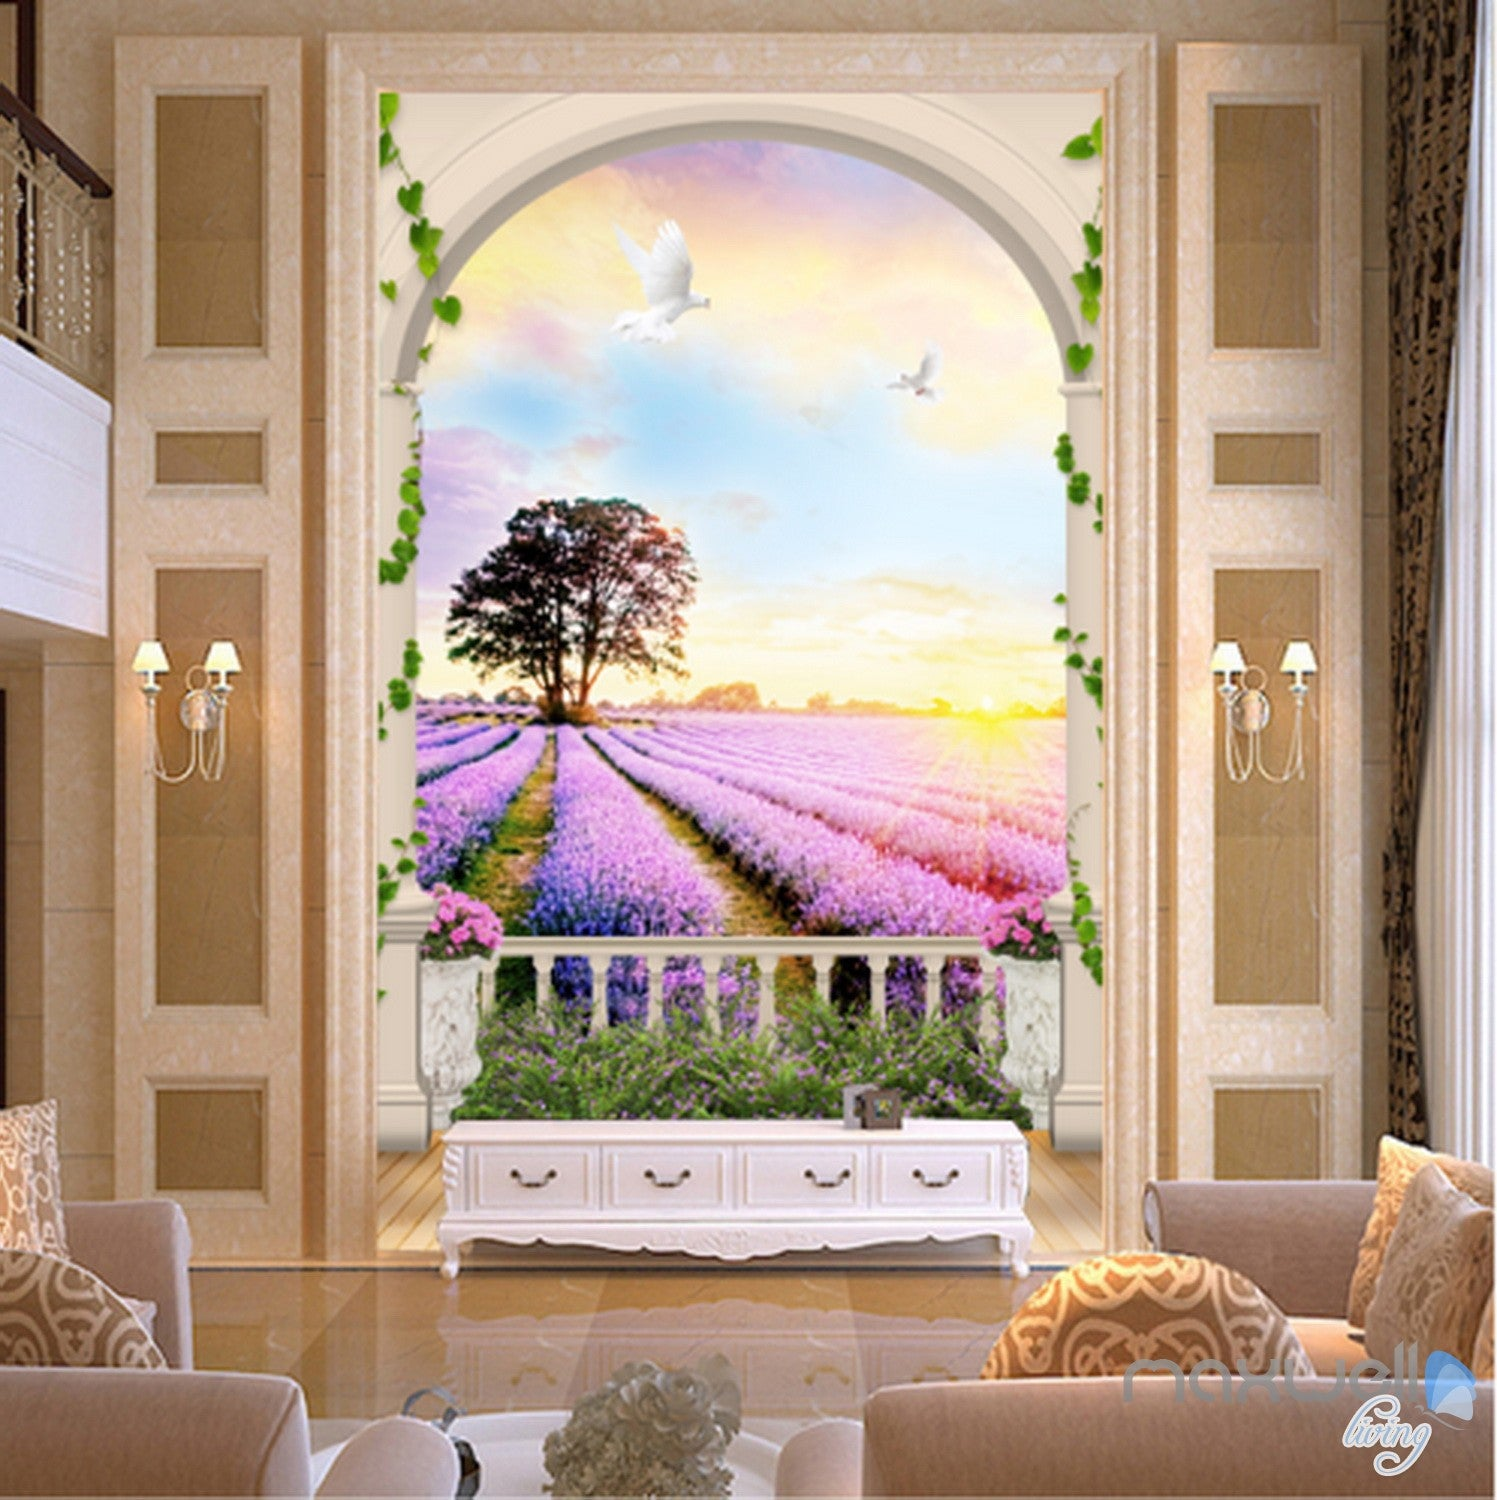 Wallpaper Decals: 3D Arch Lavender Field Tree Sunrise Entrance Wall Mural